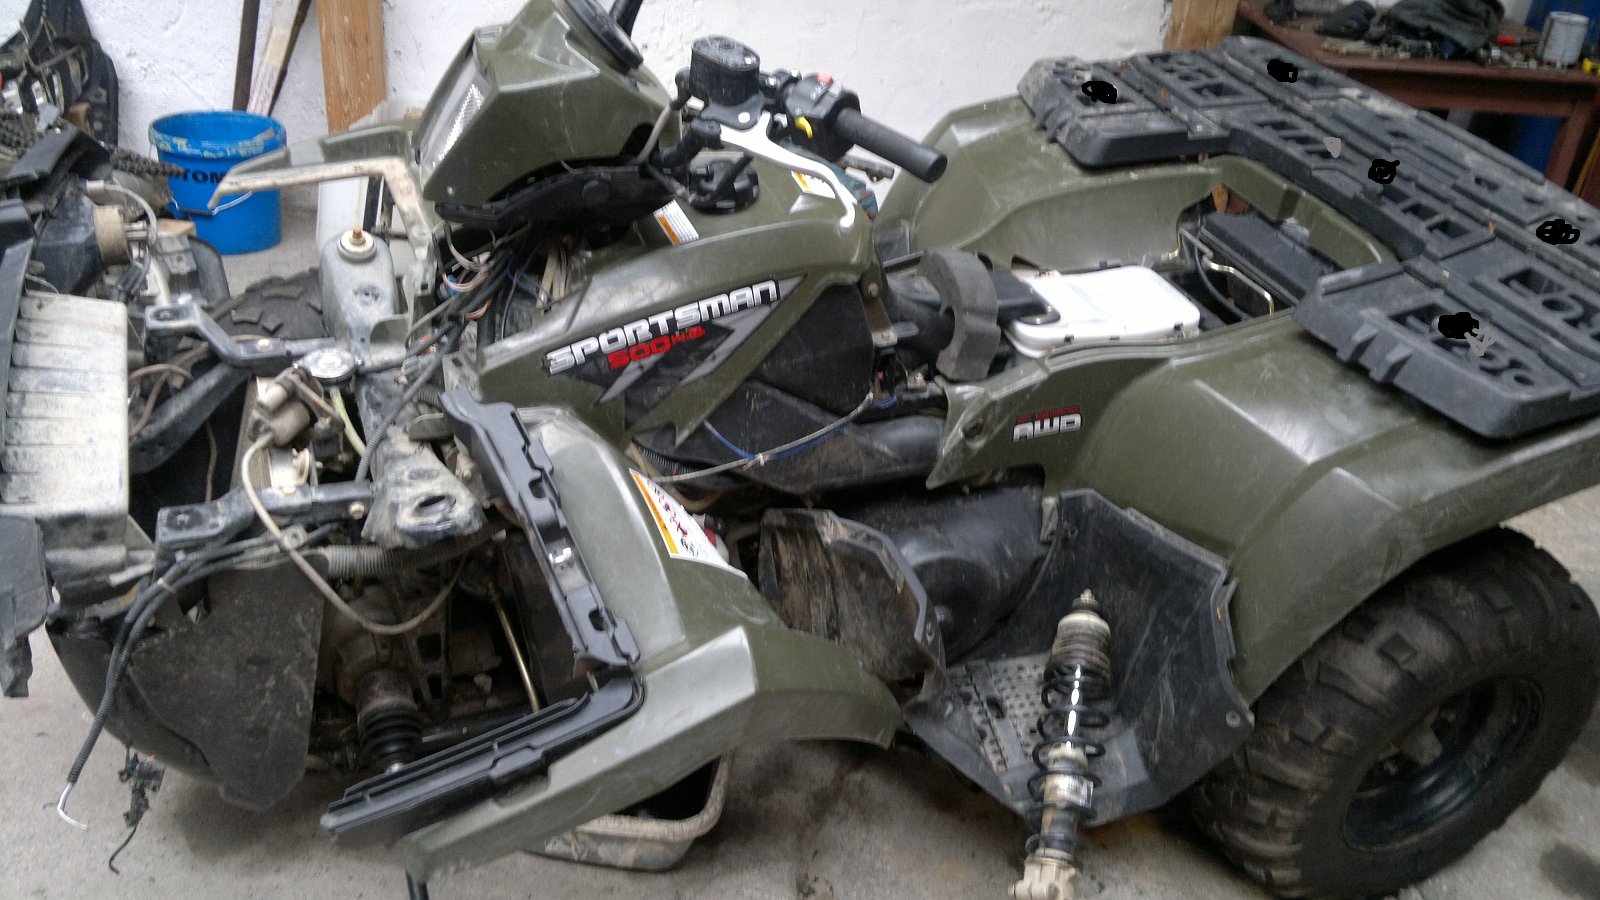 Polaris Sportsman 500HO 2008